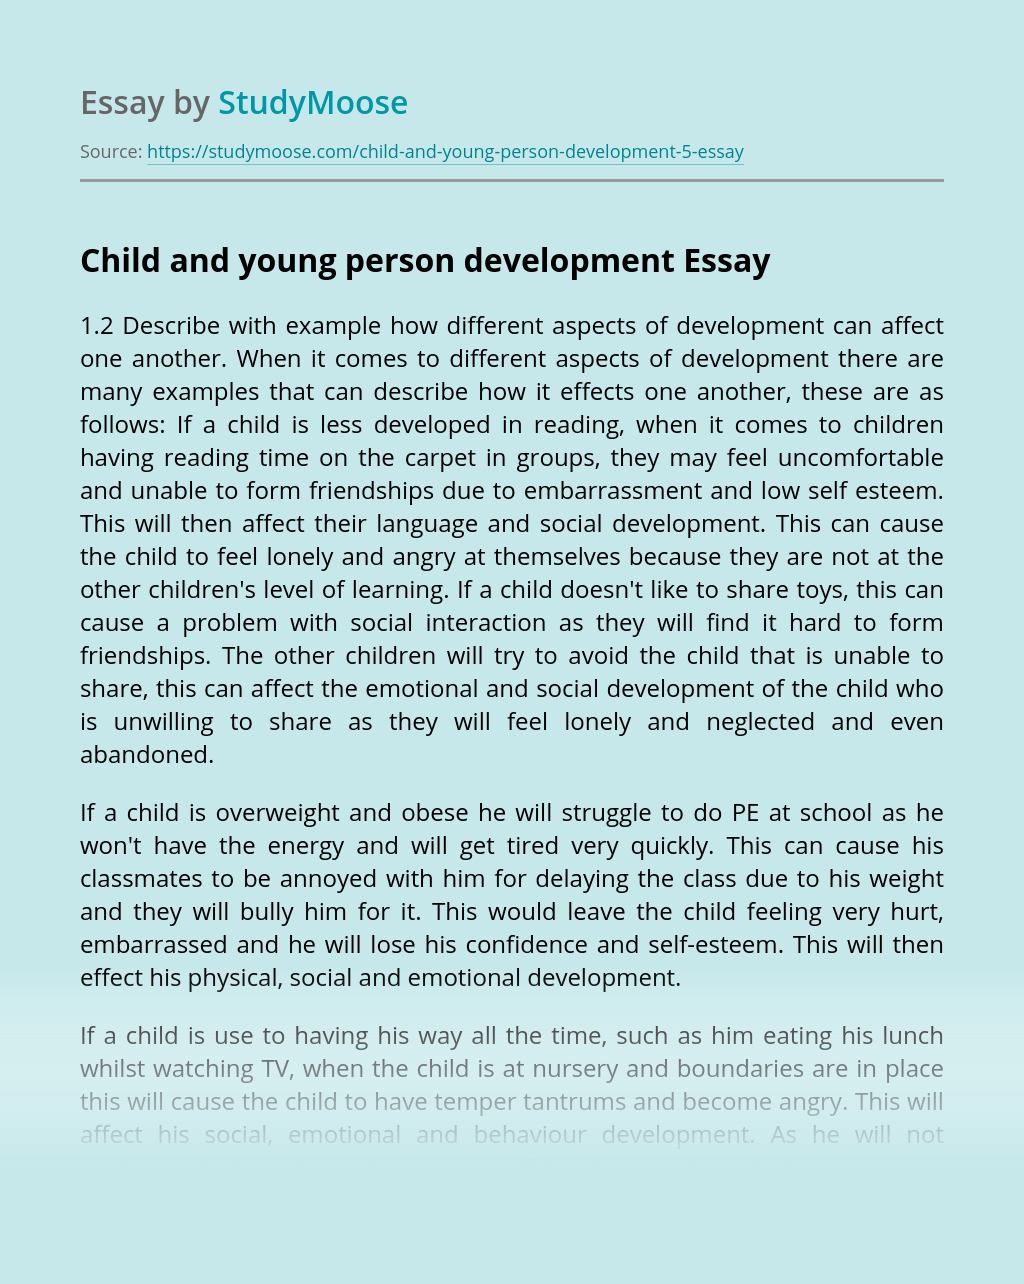 Young People's Development